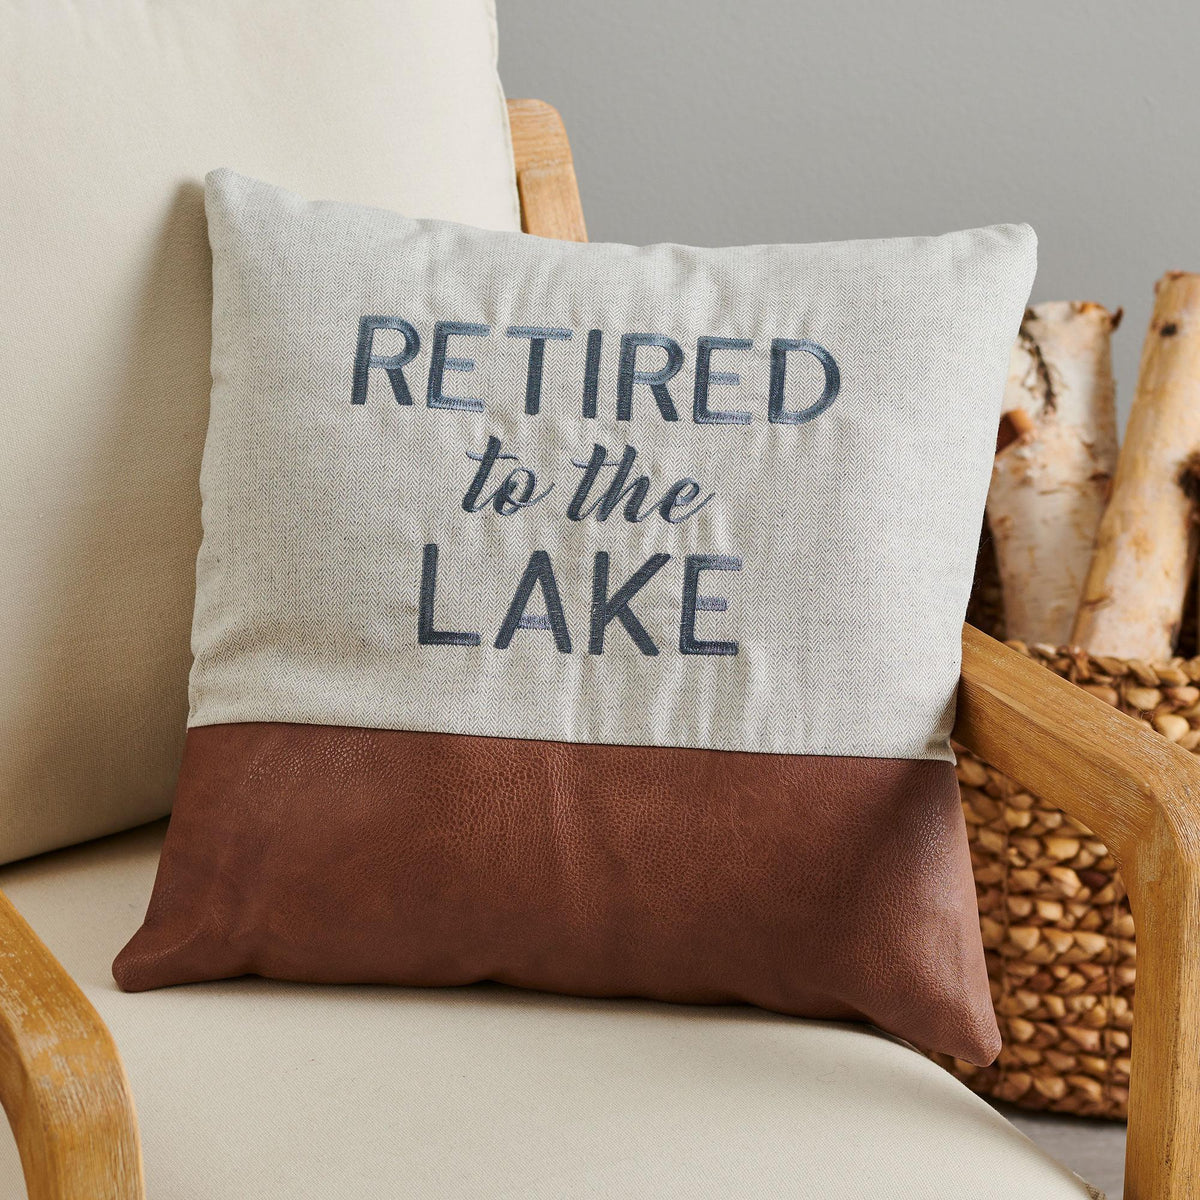 Retired to The Lake.